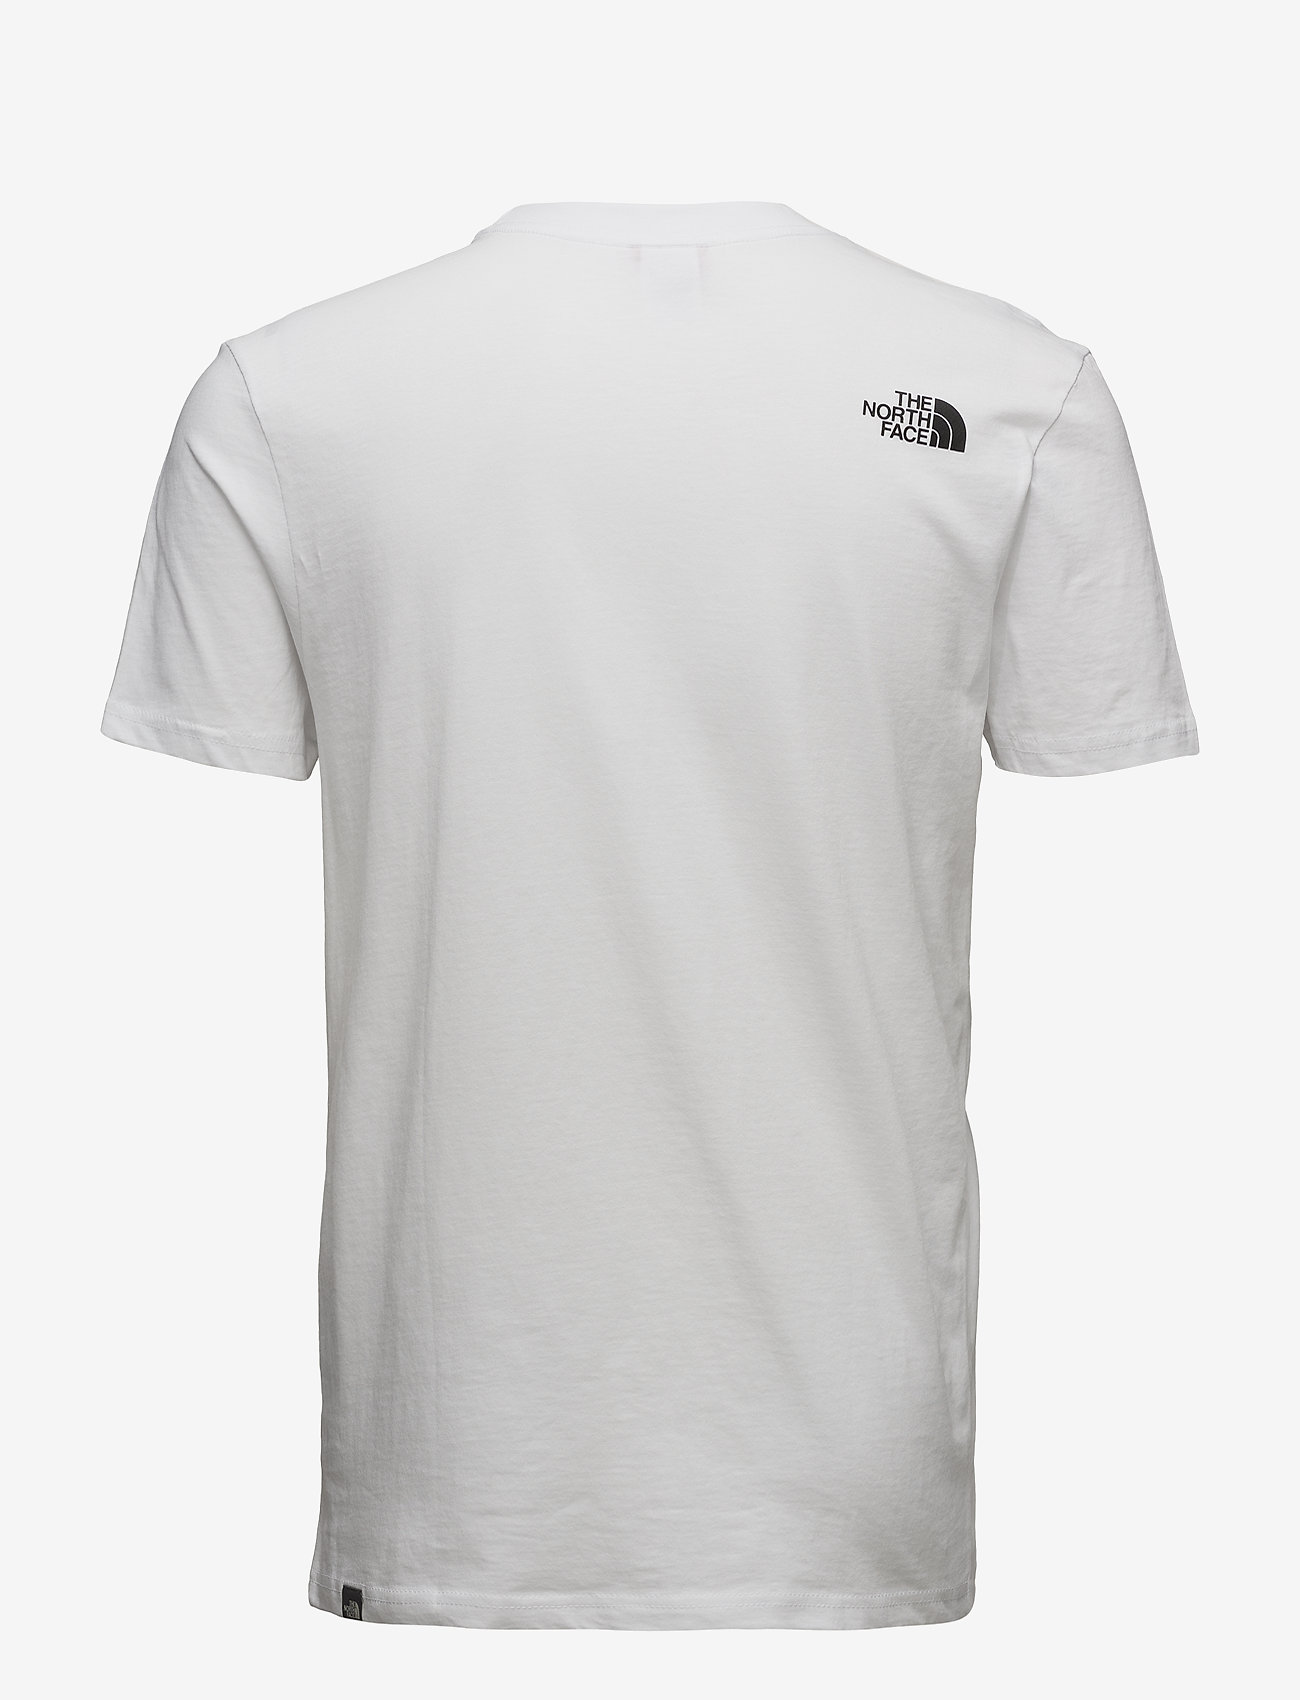 The North Face - M S/S EASY TEE - t-shirts à manches courtes - tnf white - 1